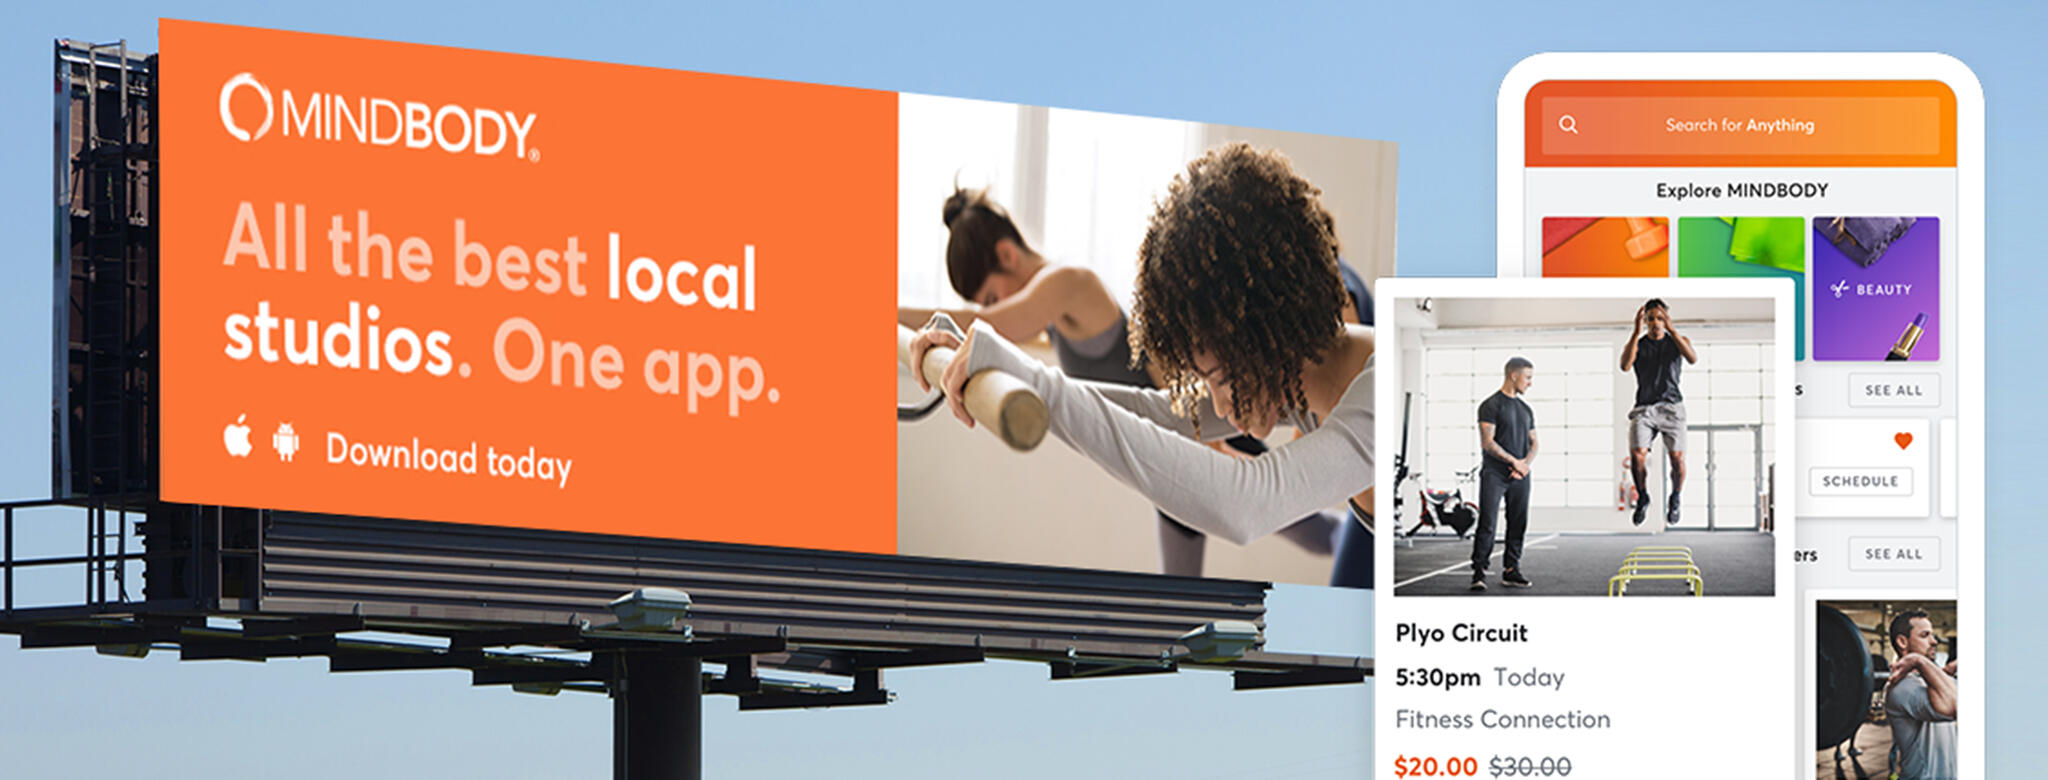 MINDBODY national ad campaign on billboard